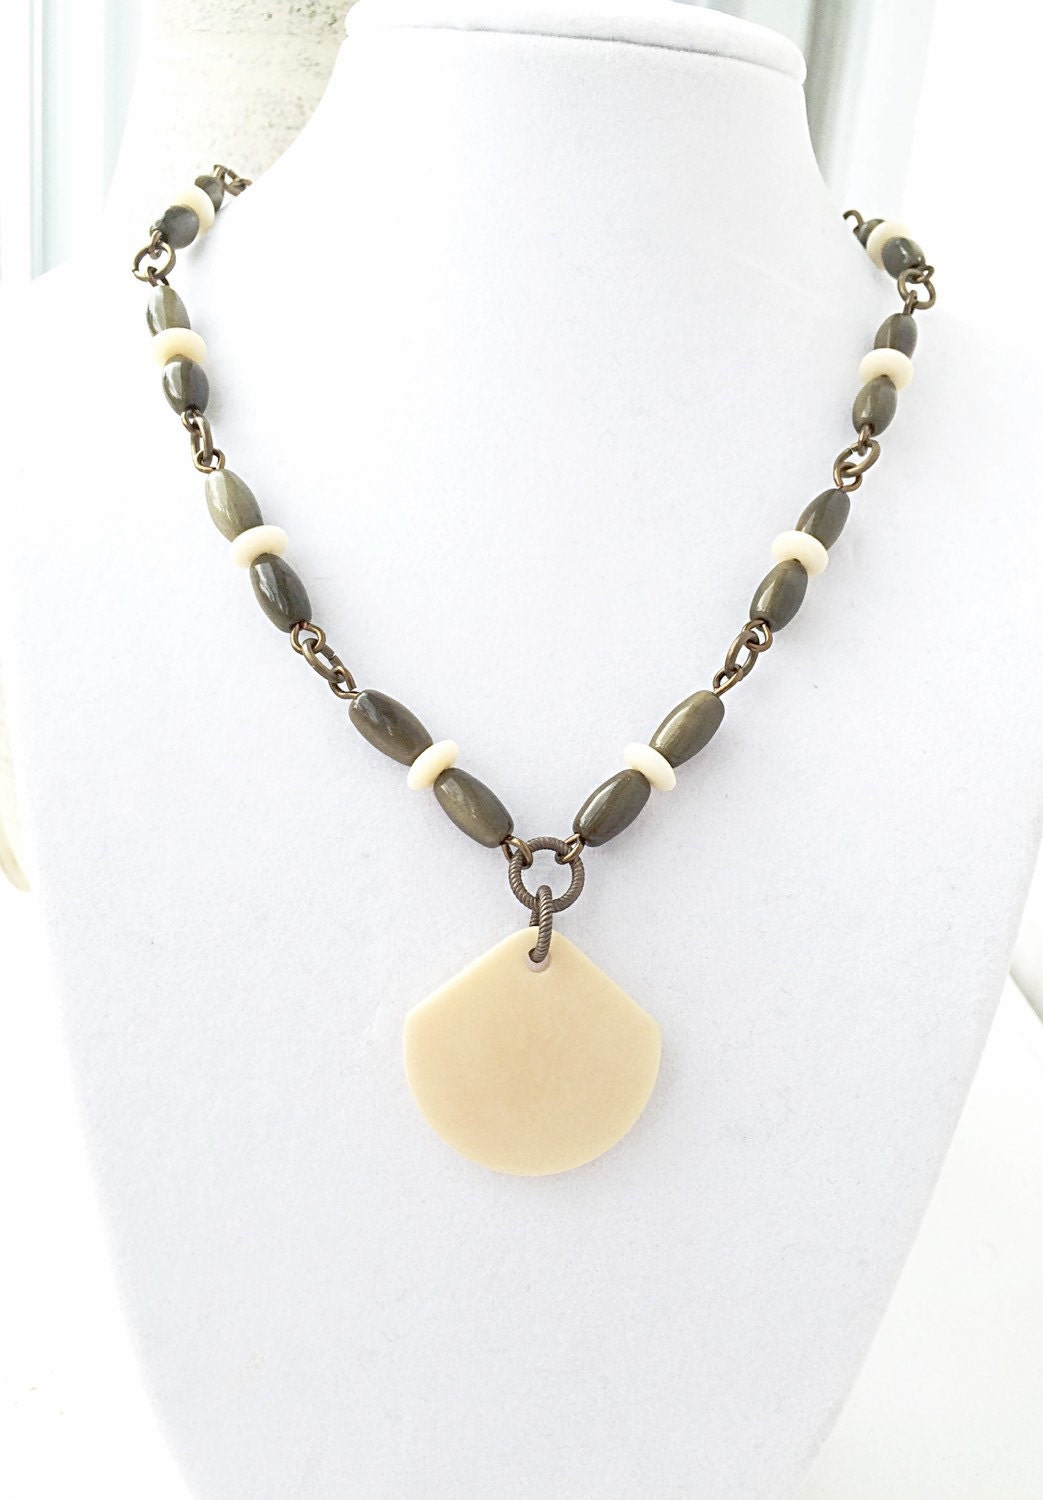 tagua nut jewelry olive green necklace large fan pendant